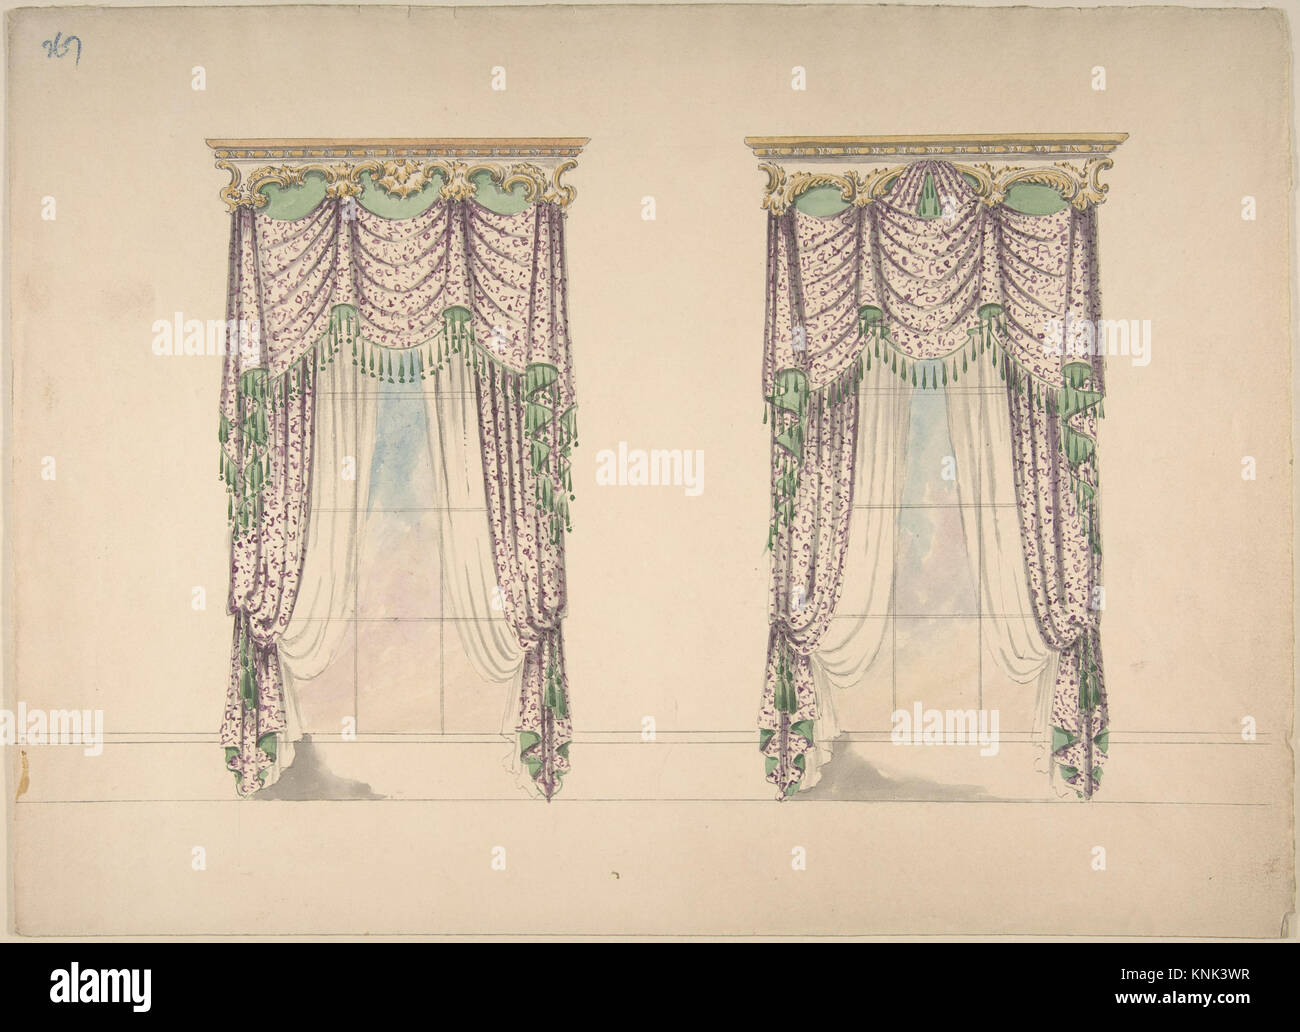 design pediment artist curtains century british anonymous pink gold date curtain for early with a photo stock white inner and